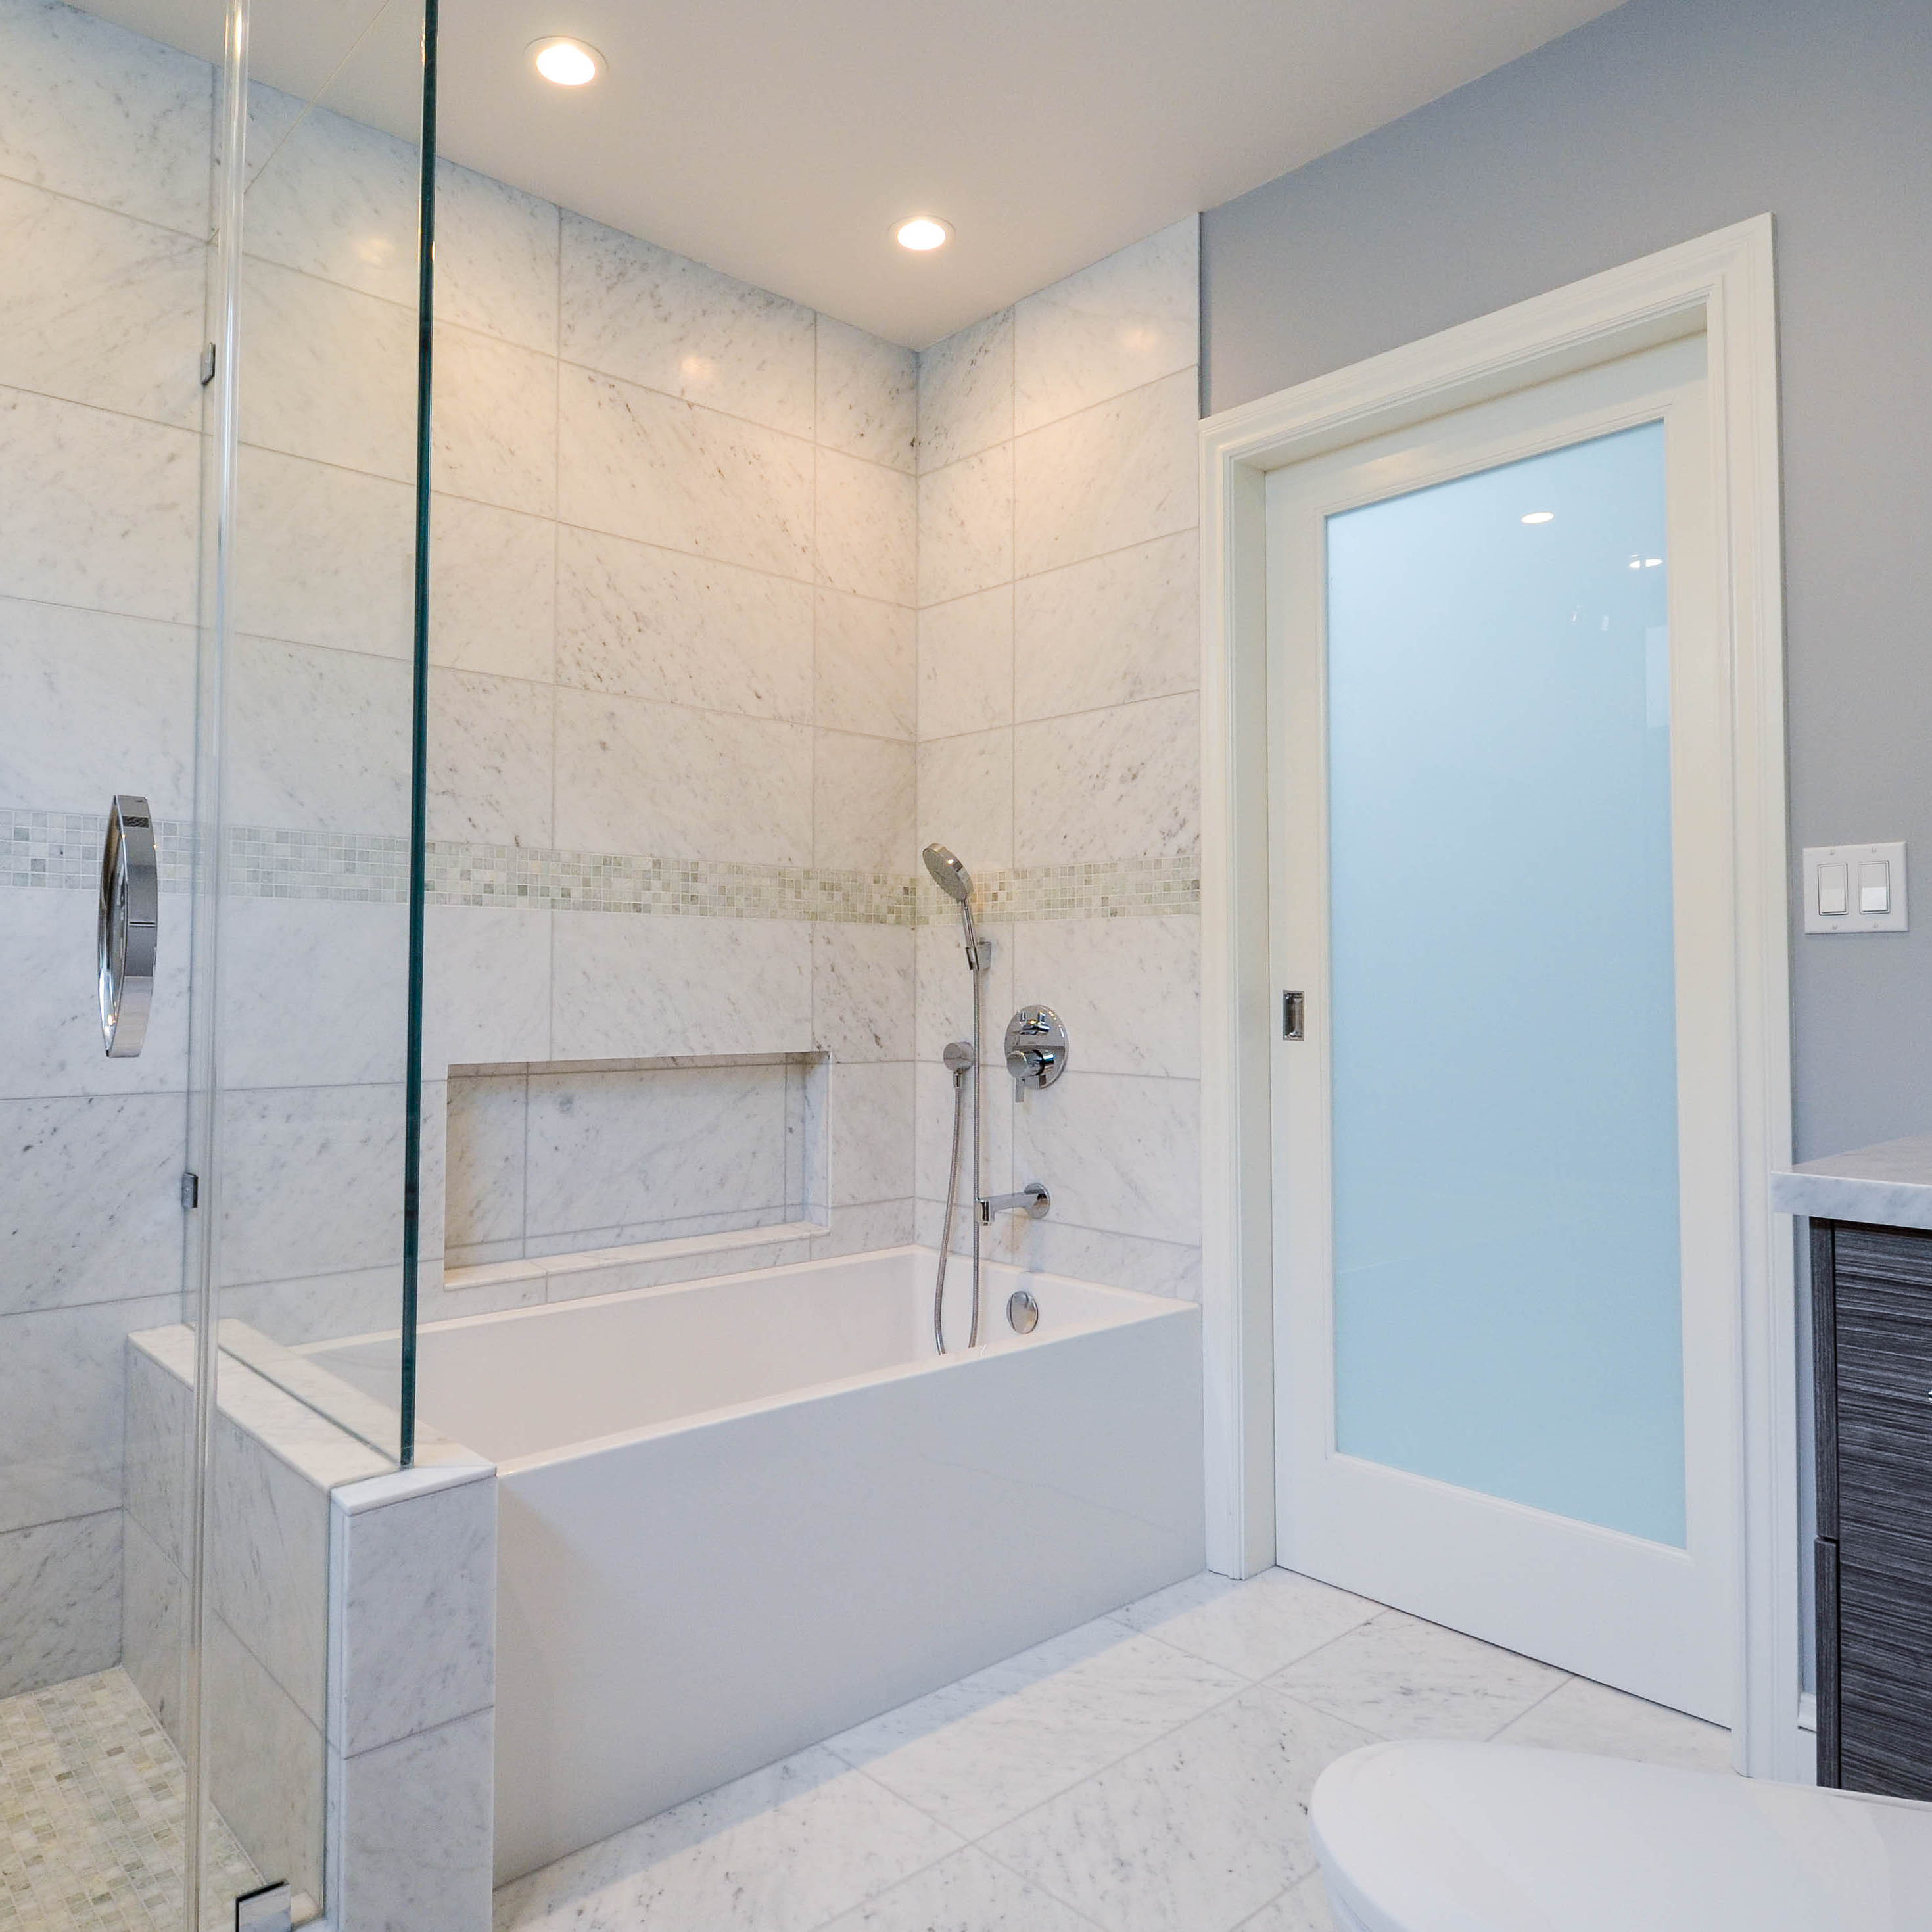 Bathroom Exterior remodeling in San Francisco, Pacific Heights